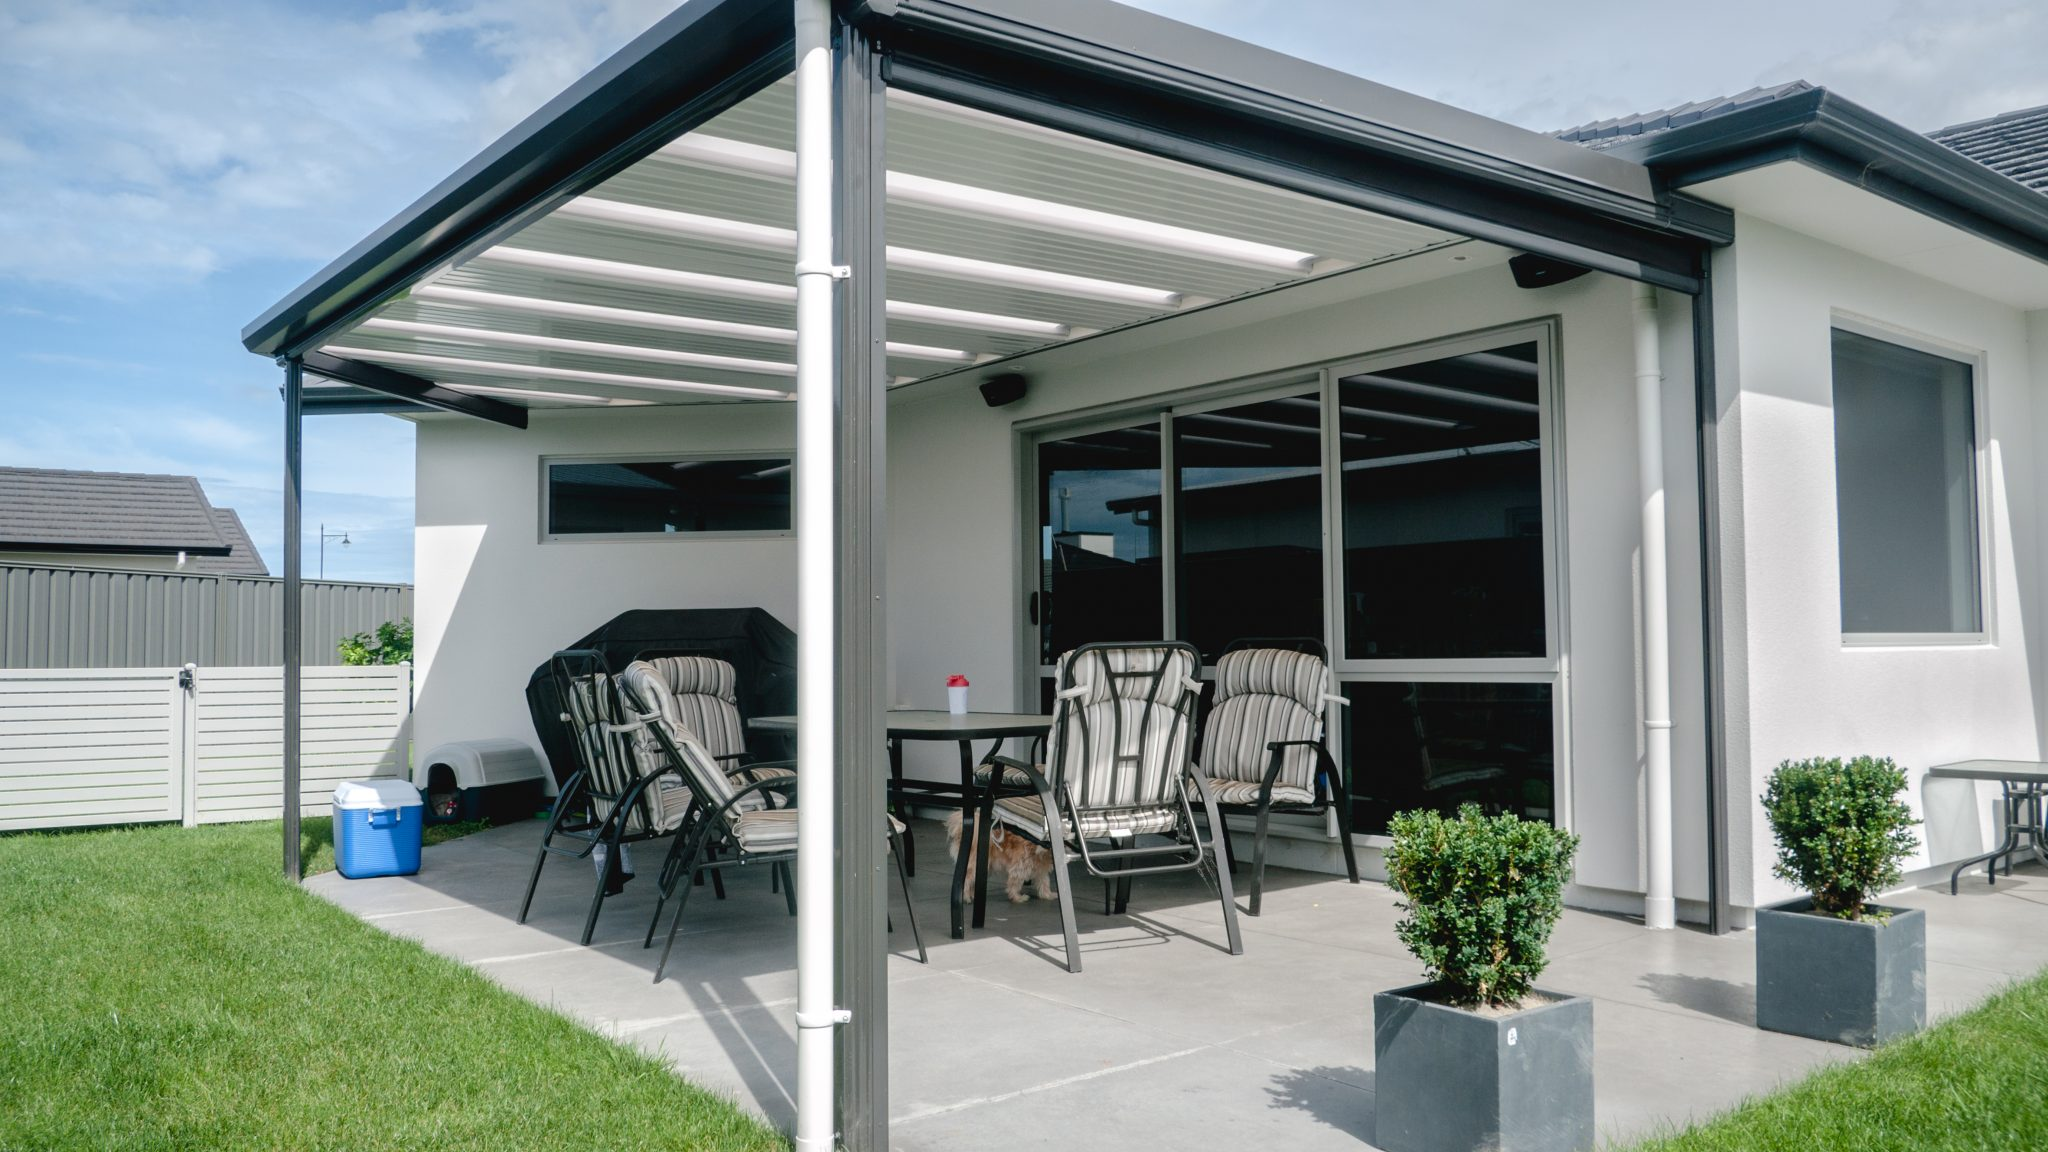 An outdoor dining area in parklands, napier sheltered by a beautiful pergola roof extension in white and grey colour scheme to match the houses existing colour scheme